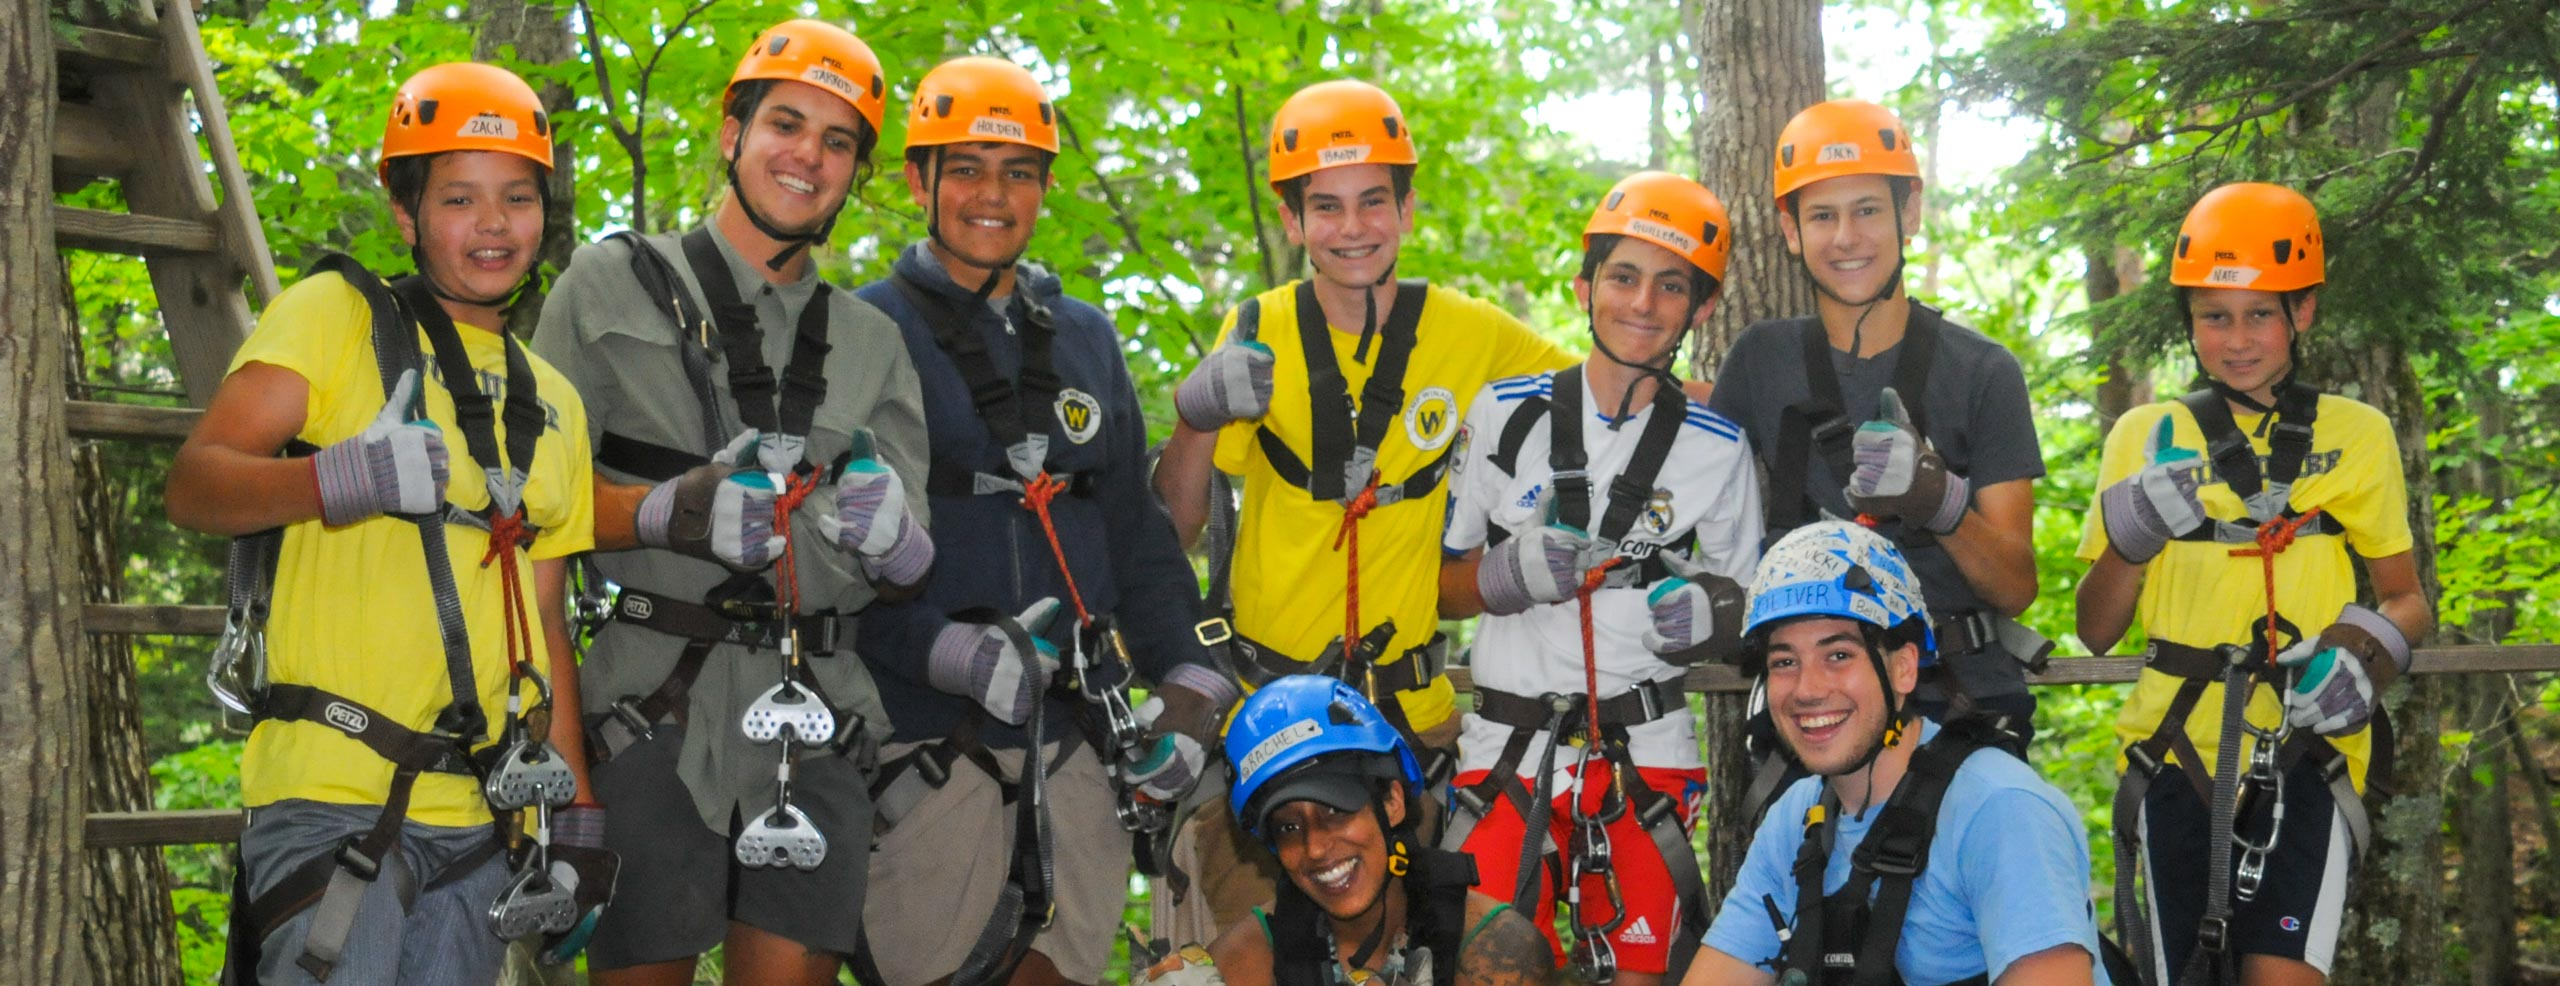 School group kids taking a group photo in zip lining gear